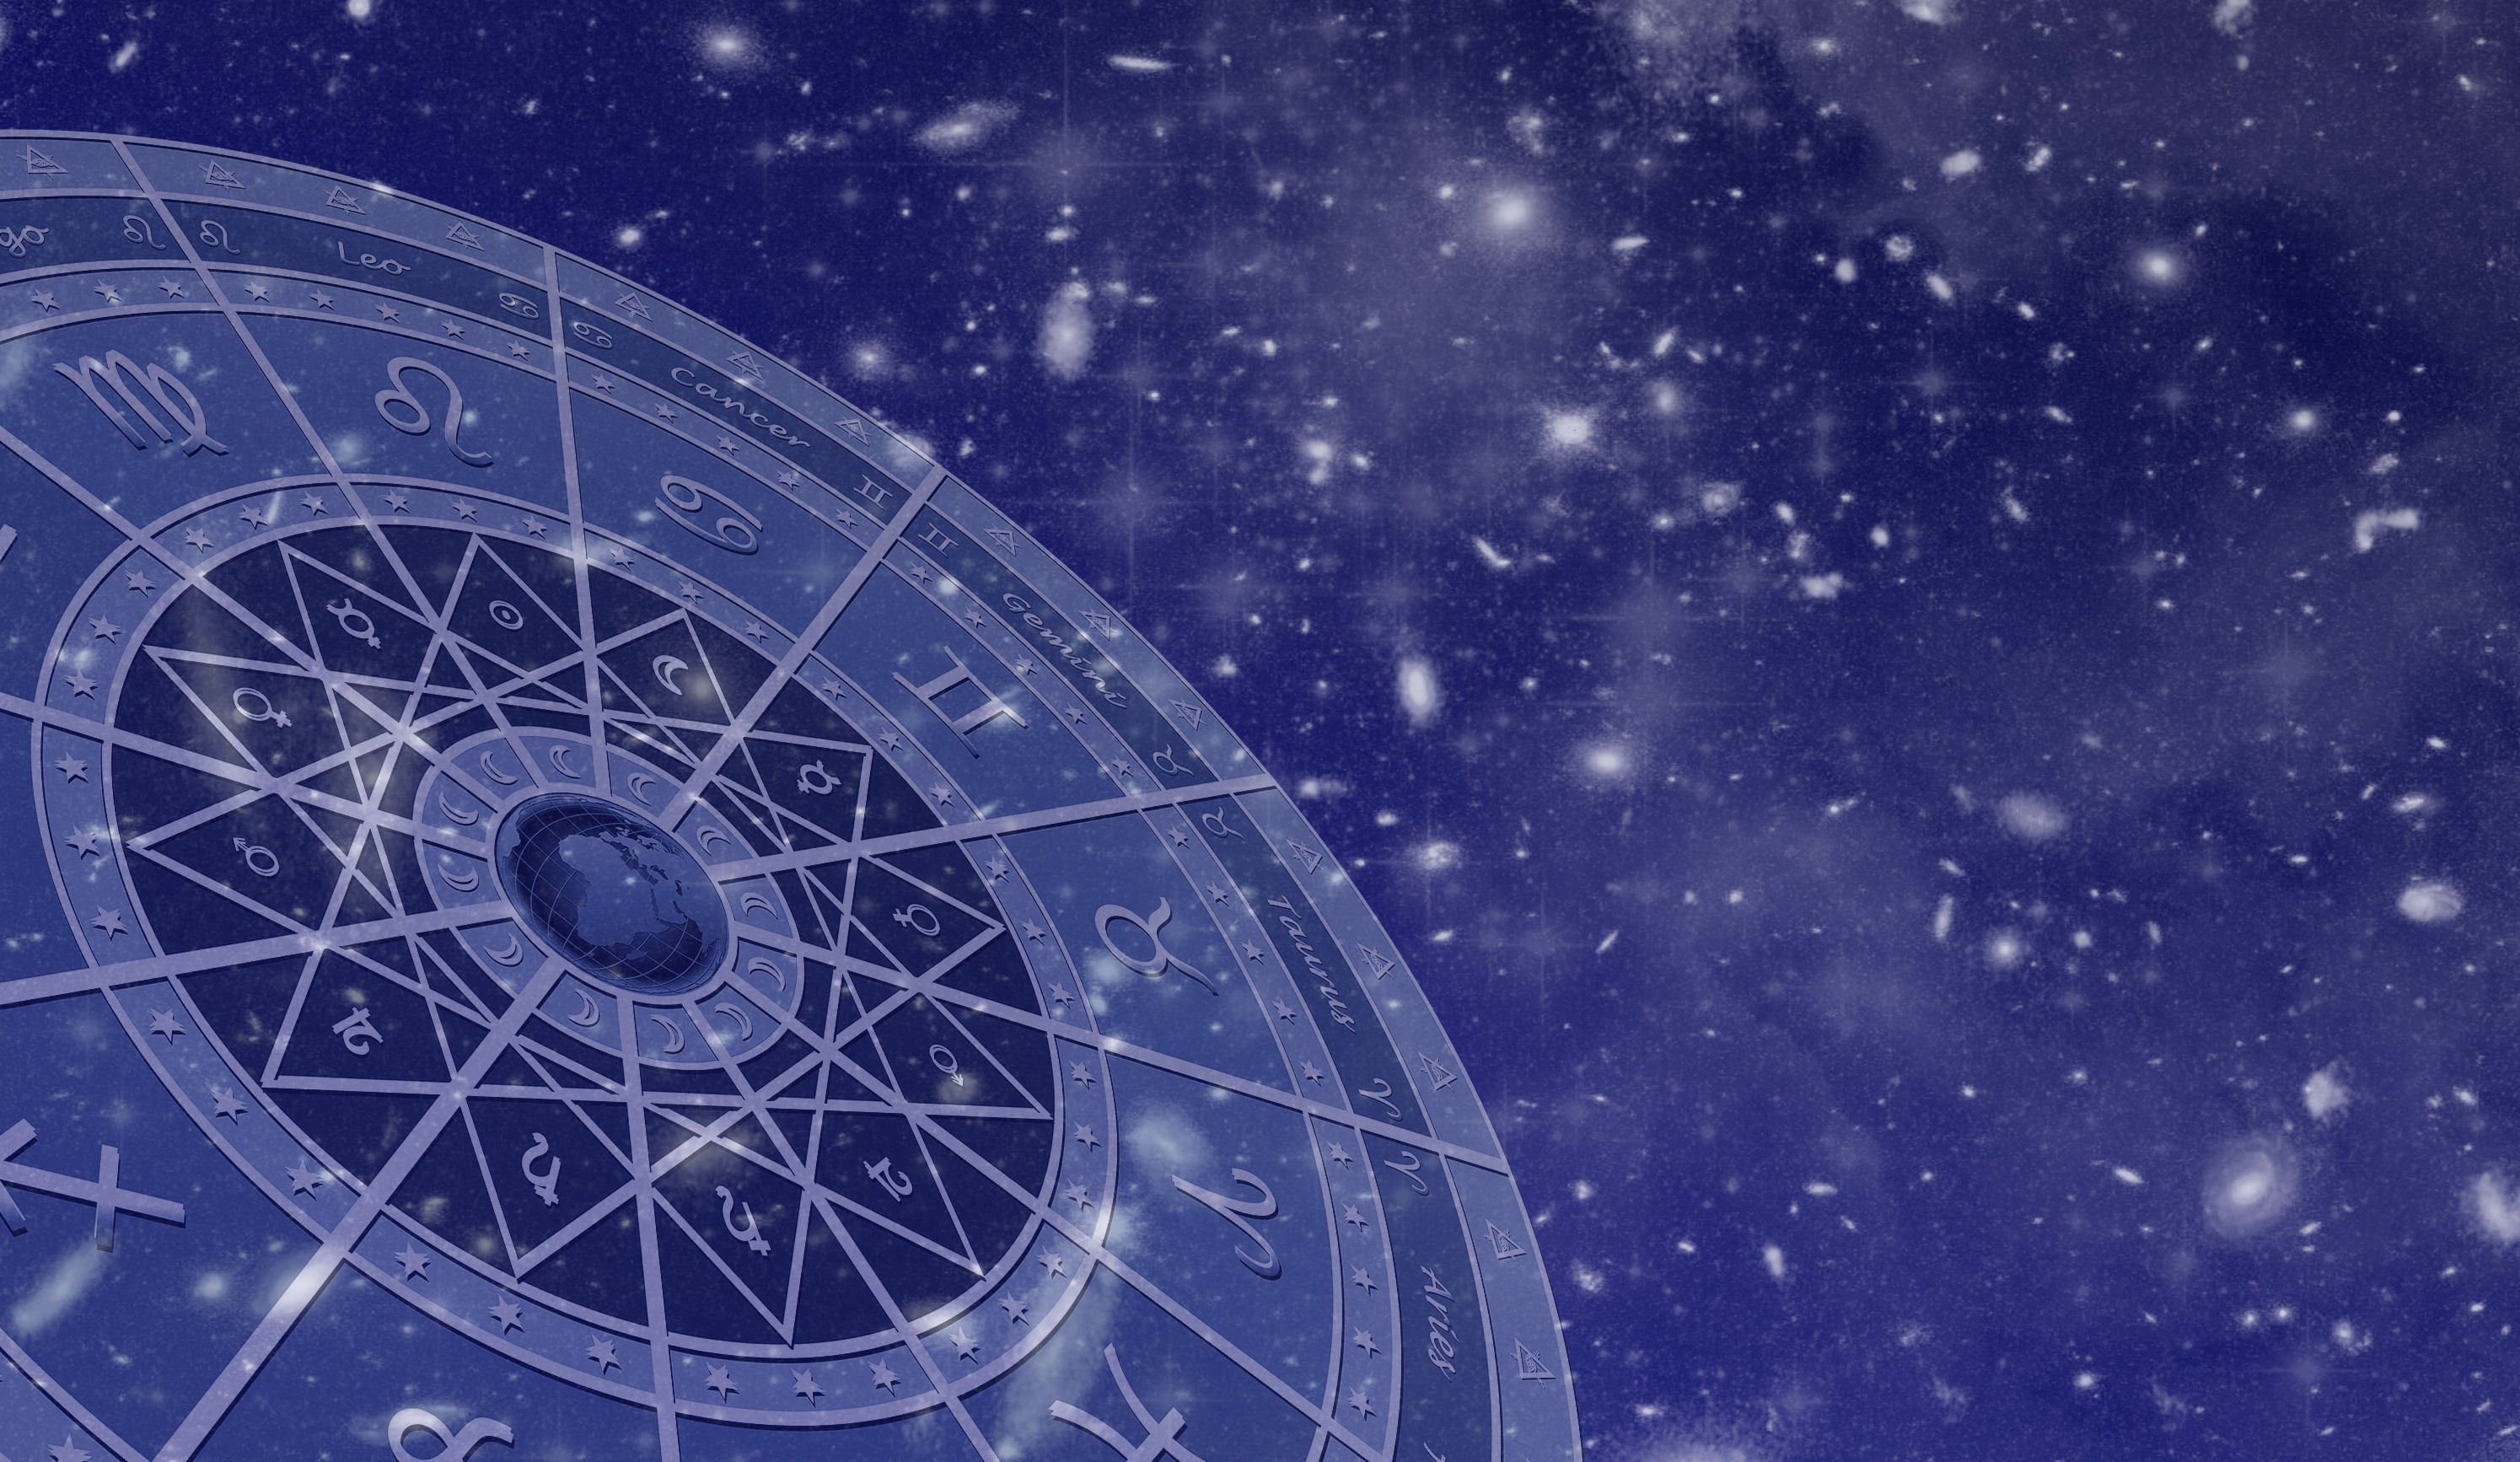 of the zodiac on a blue background wallpapers and images   wallpapers 2989x1734